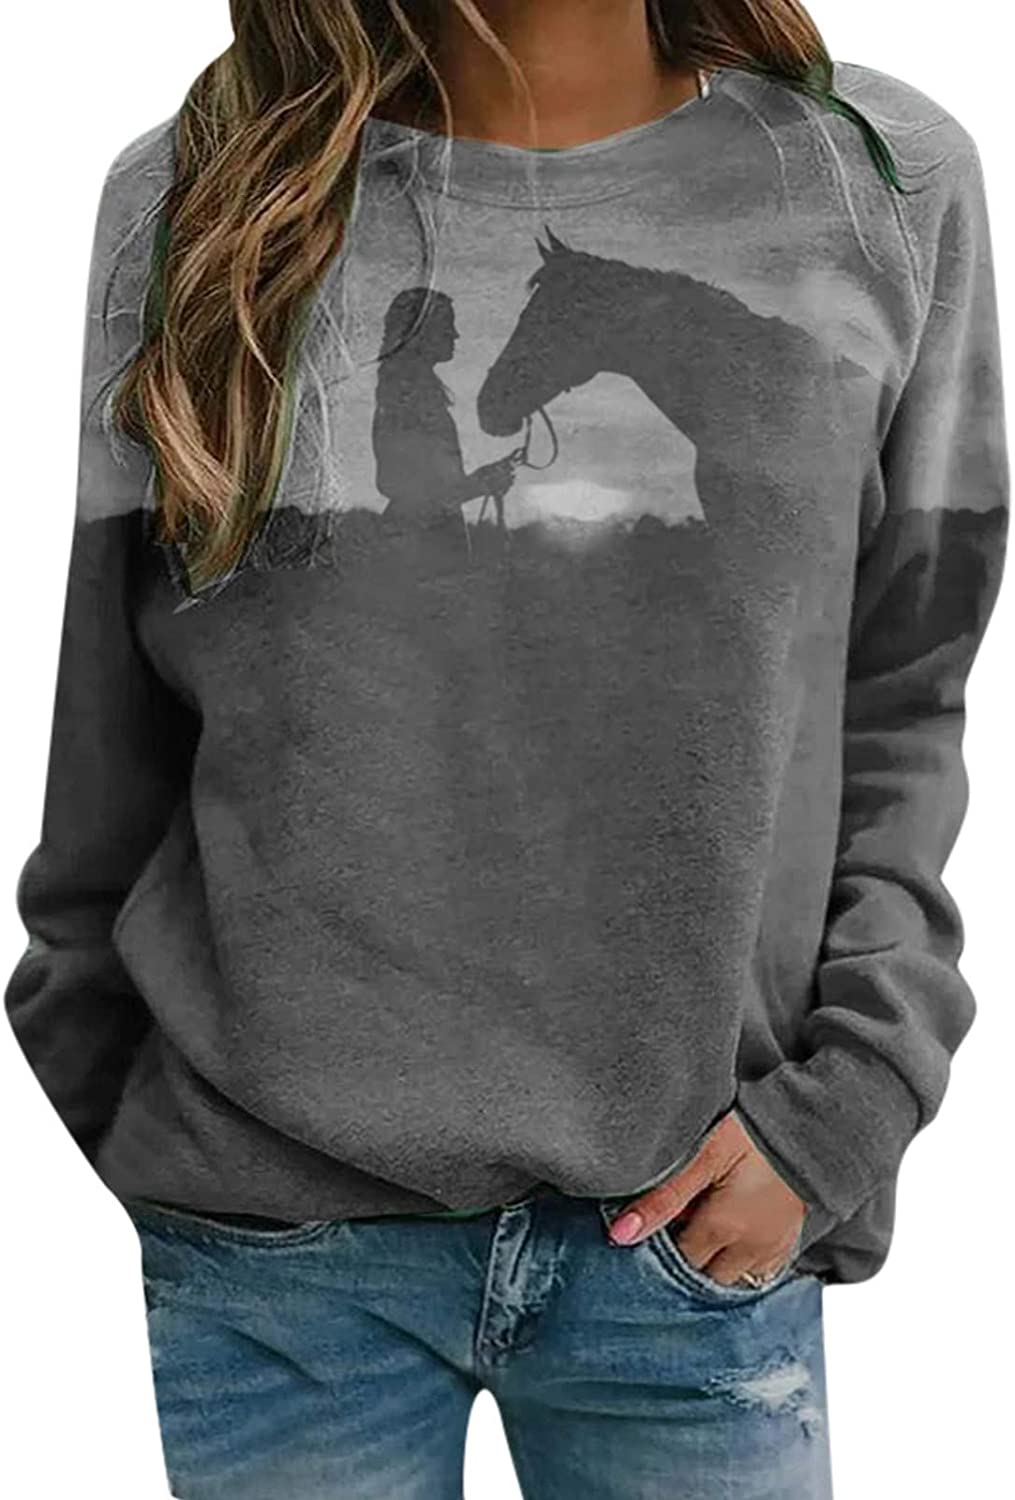 ONHUON T-Shirts for Women,Womens Casual Round Neck Long Sleeve Fit Tunic Fashion Print Top Baggy Comfy Blouse